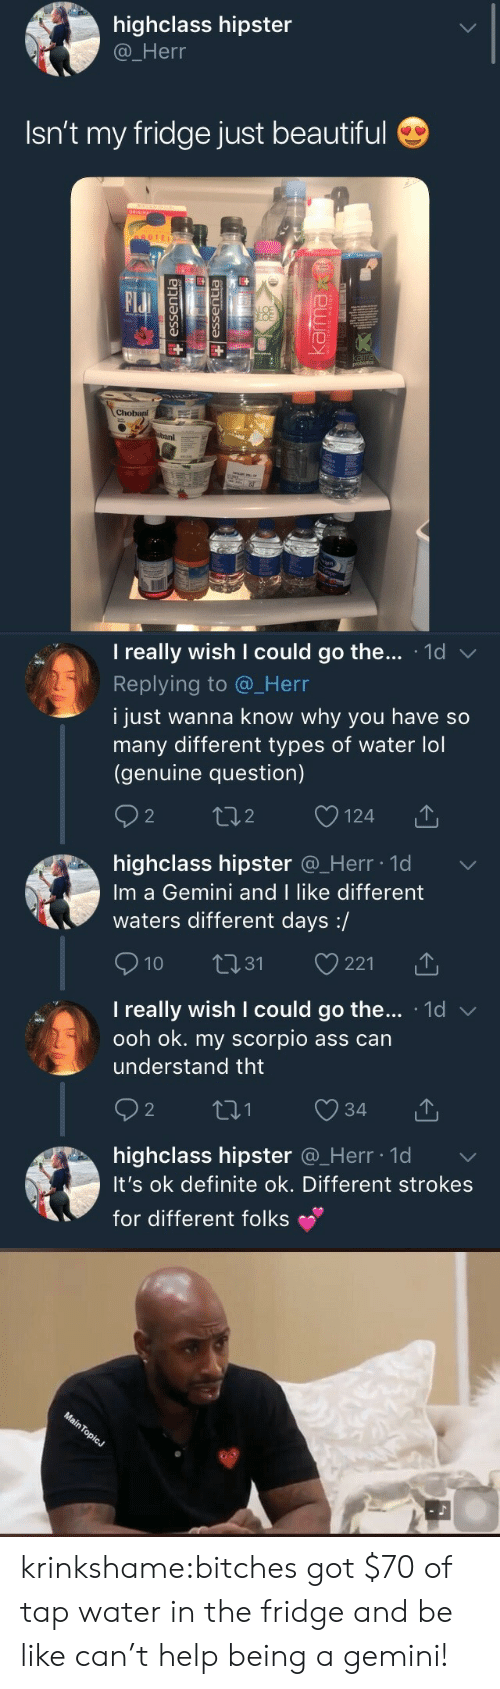 Different Types Of: highclass hipster  @_Herr  Isn't my fridge just beautiful  OTEI  Elu  BAI   I really wish I could go the . 1d  Replying to @_Herr  i just wanna know why you have so  many different types of water lol  (genuine question)  2  o124  2  highclass hipster @_Herr ld  Im a Gemini and I like different  waters different days:/  10 31 221  I really wish I could go the... 1d v  ooh ok. my scorpio ass can  understand tht  2  highclass hipster Q_Herr lo  It's ok definite ok. Different strokes  for different folks krinkshame:bitches got $70 of tap water in the fridge and be like can't help being a gemini!